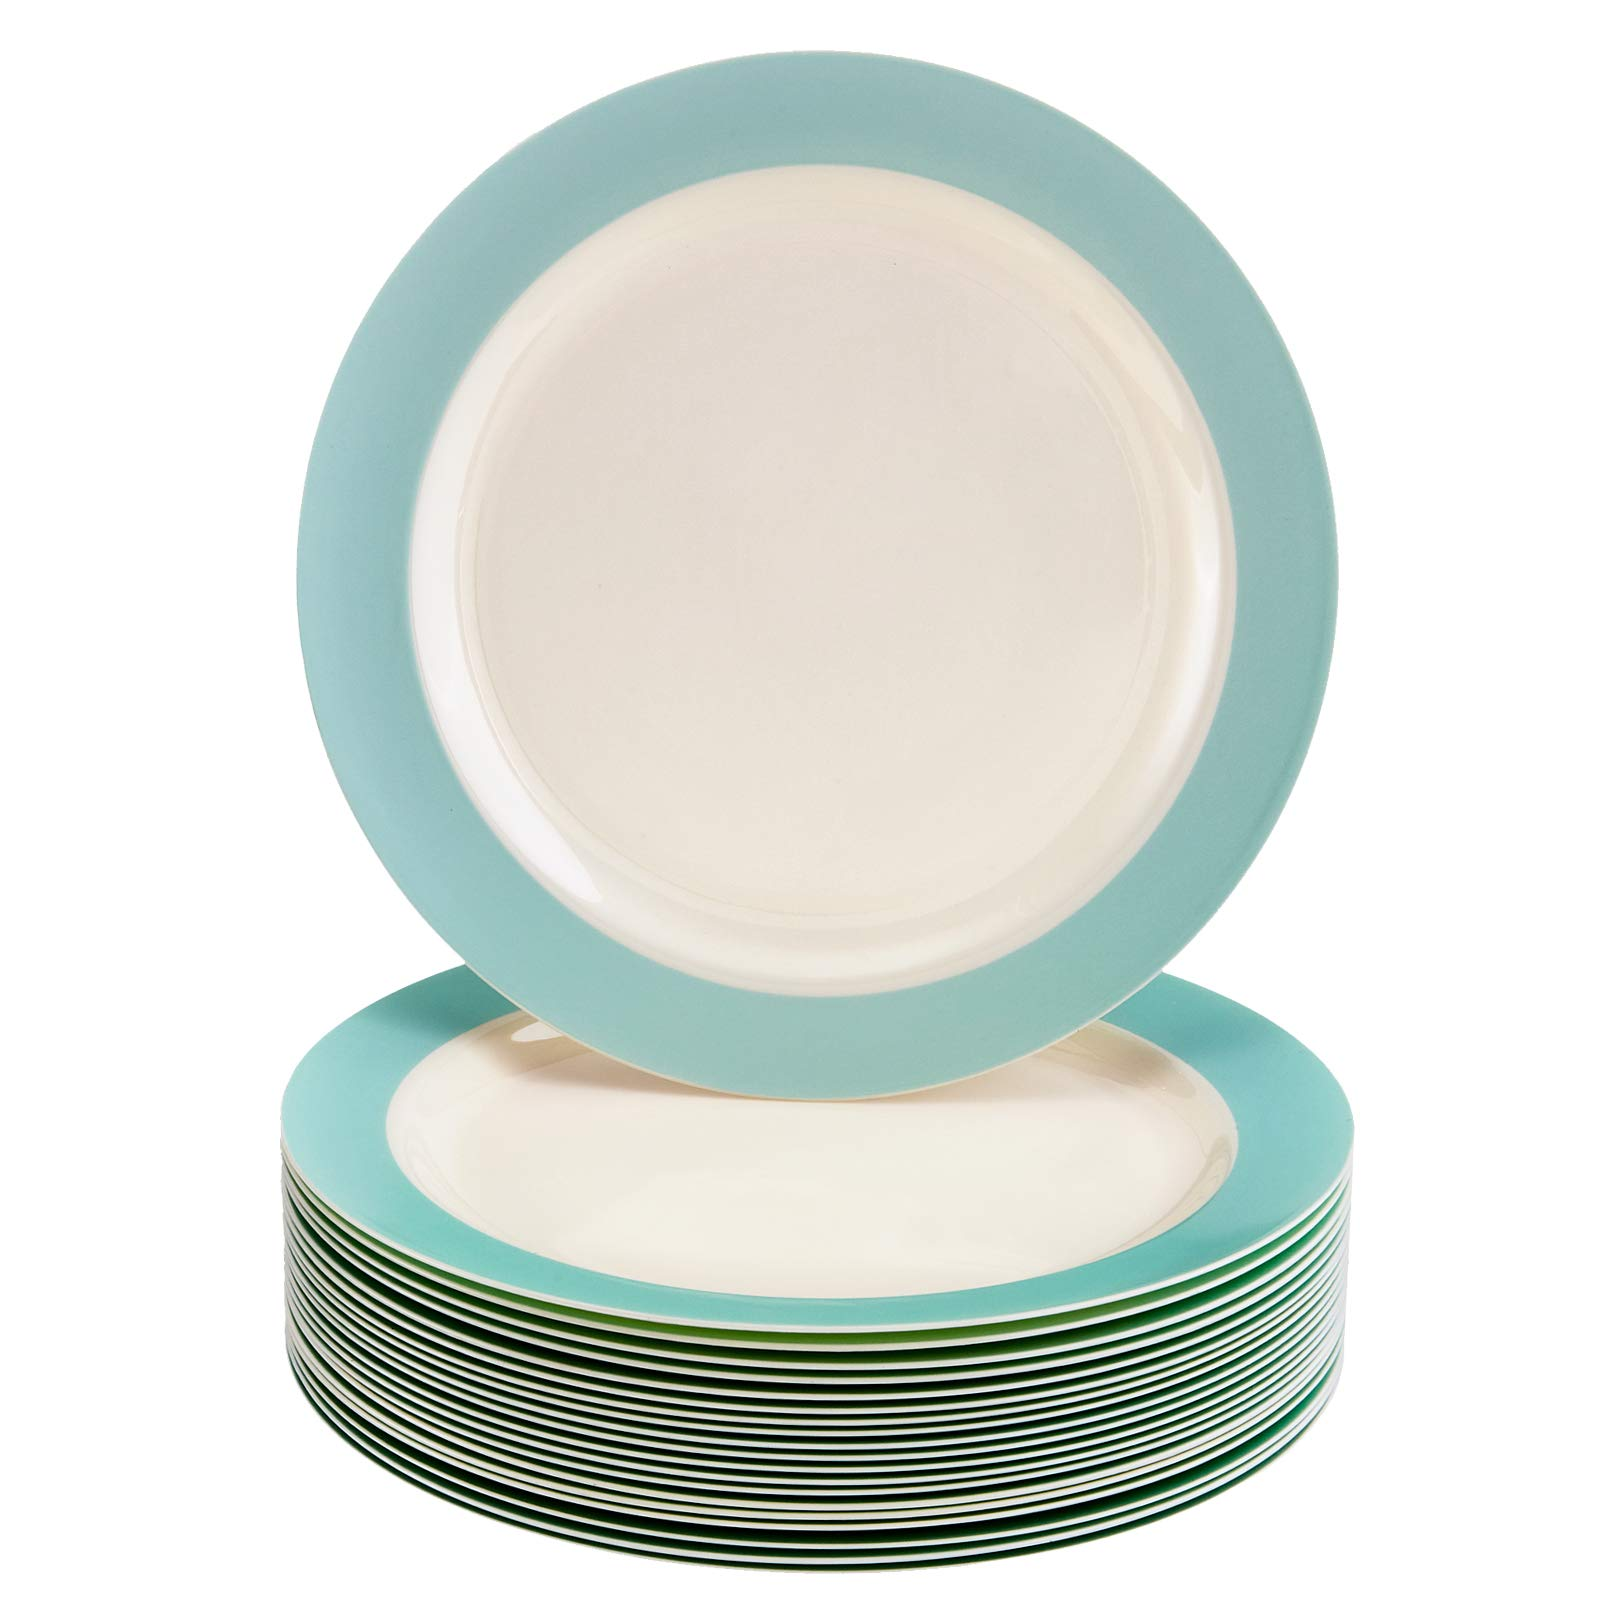 DISPOSABLE SIDE PLATES | Heavy Duty Plastic Dishes | Elegant Fine China Look | Pastel Collection - Turquoise (40 PC - 7.5'') by Silver Spoons